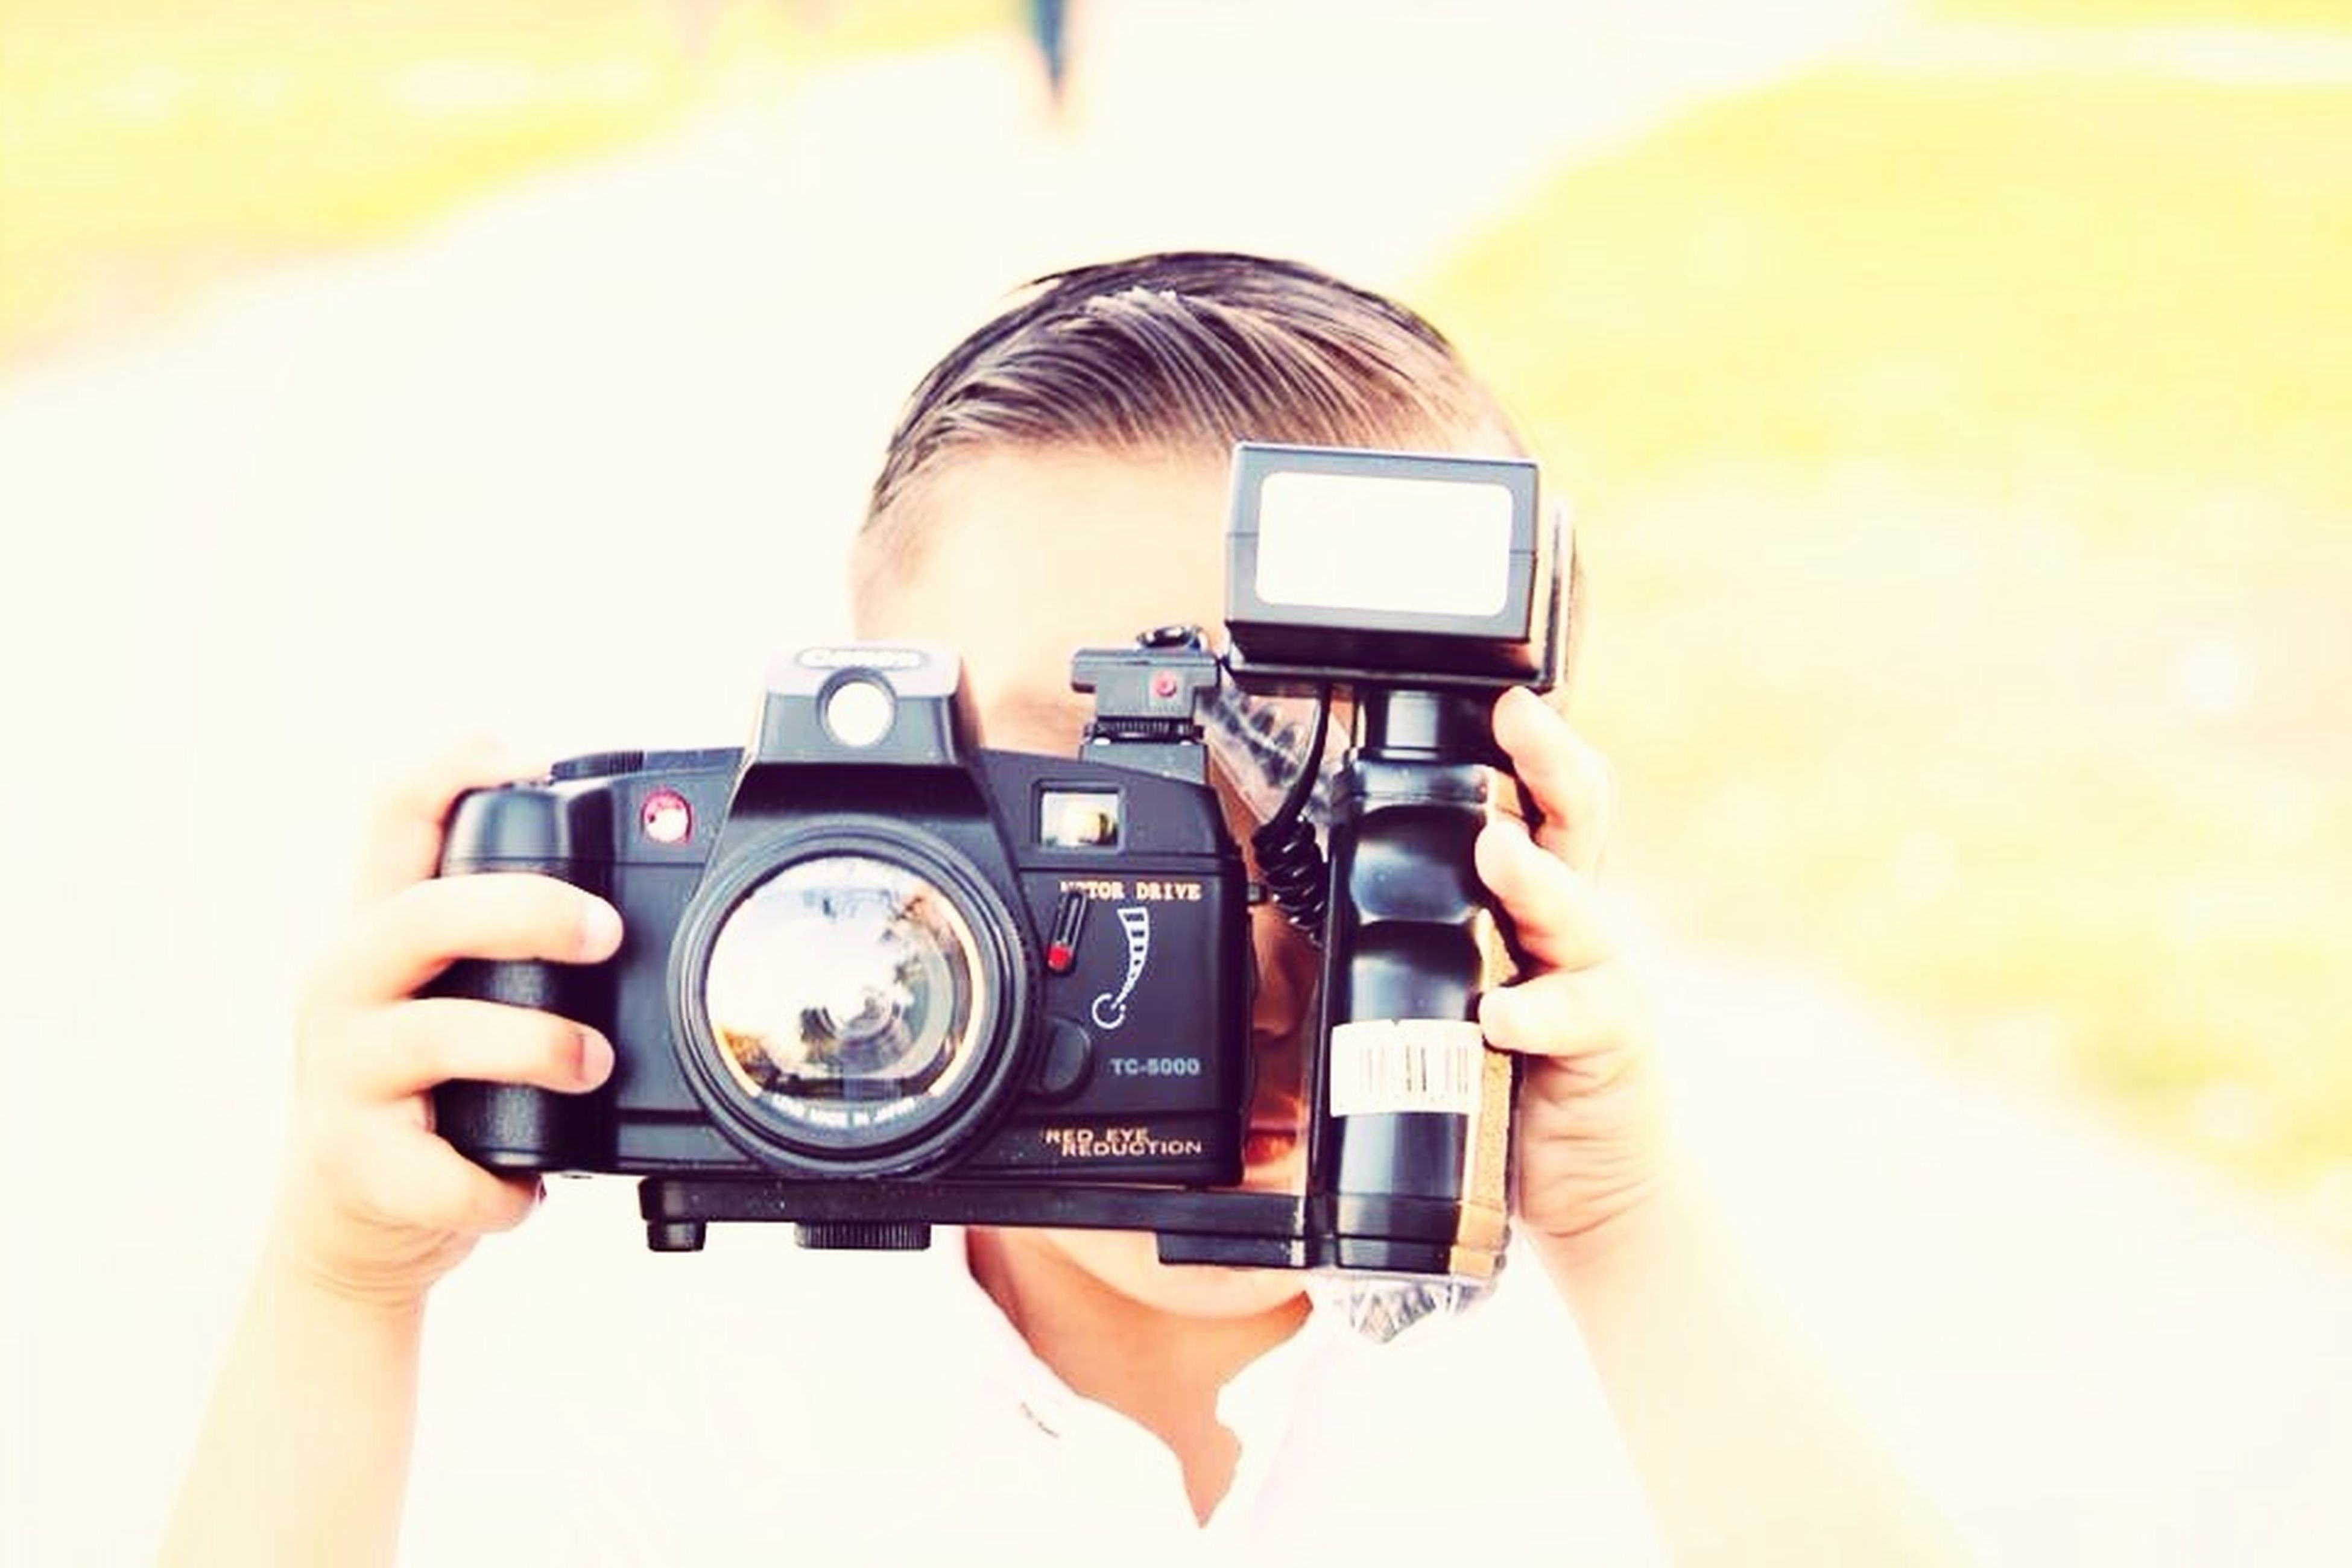 technology, photography themes, camera - photographic equipment, photographing, communication, wireless technology, holding, digital camera, smart phone, person, mobile phone, close-up, connection, lens - optical instrument, retro styled, old-fashioned, indoors, part of